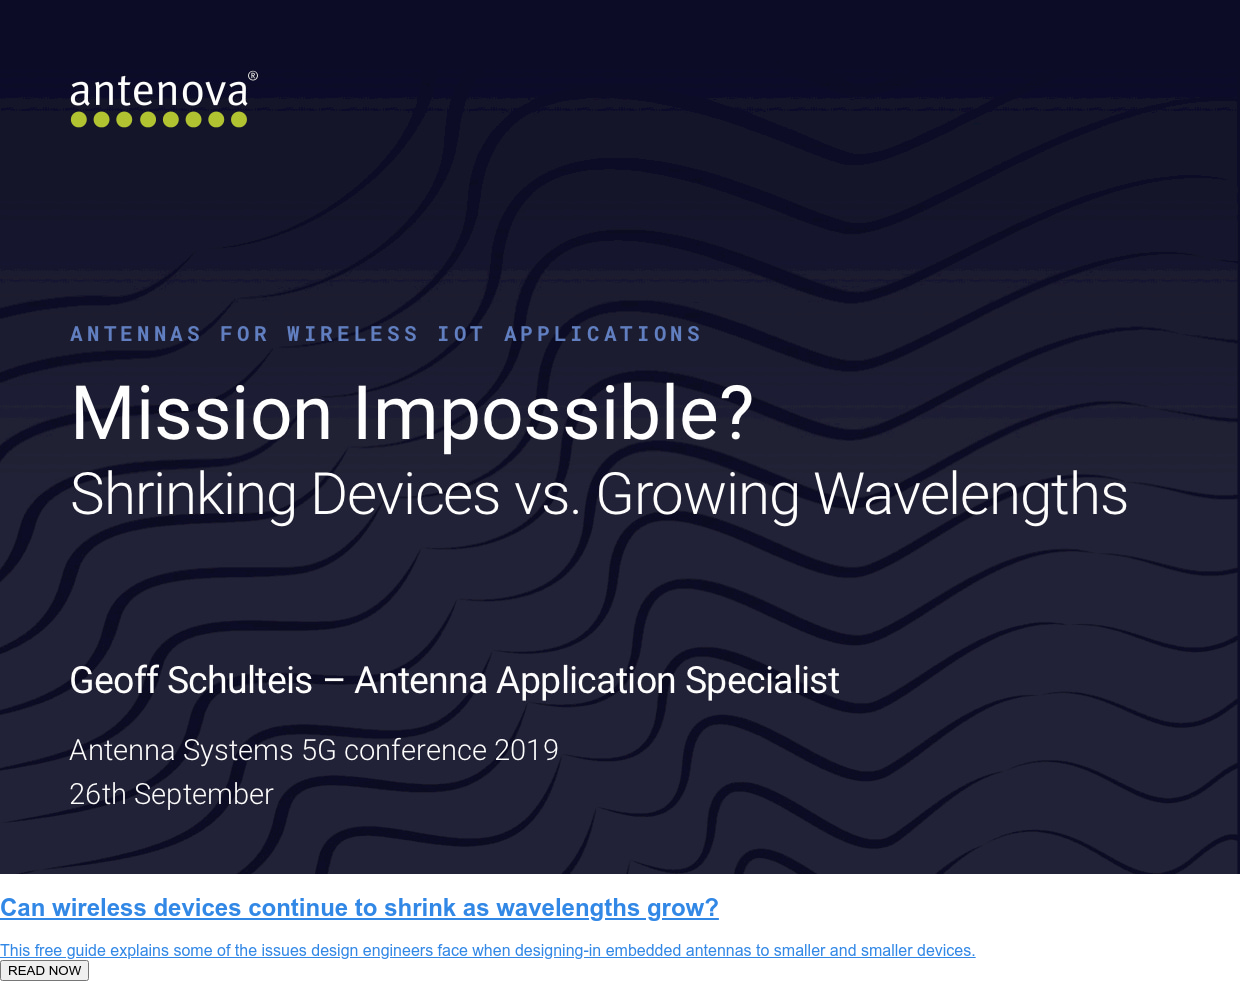 Shrinking Devices vs. Growing Wavelengths  This free guide explains some of the issues design engineers face when  designing-in embedded antennas to smaller and smaller devices.  READ NOW